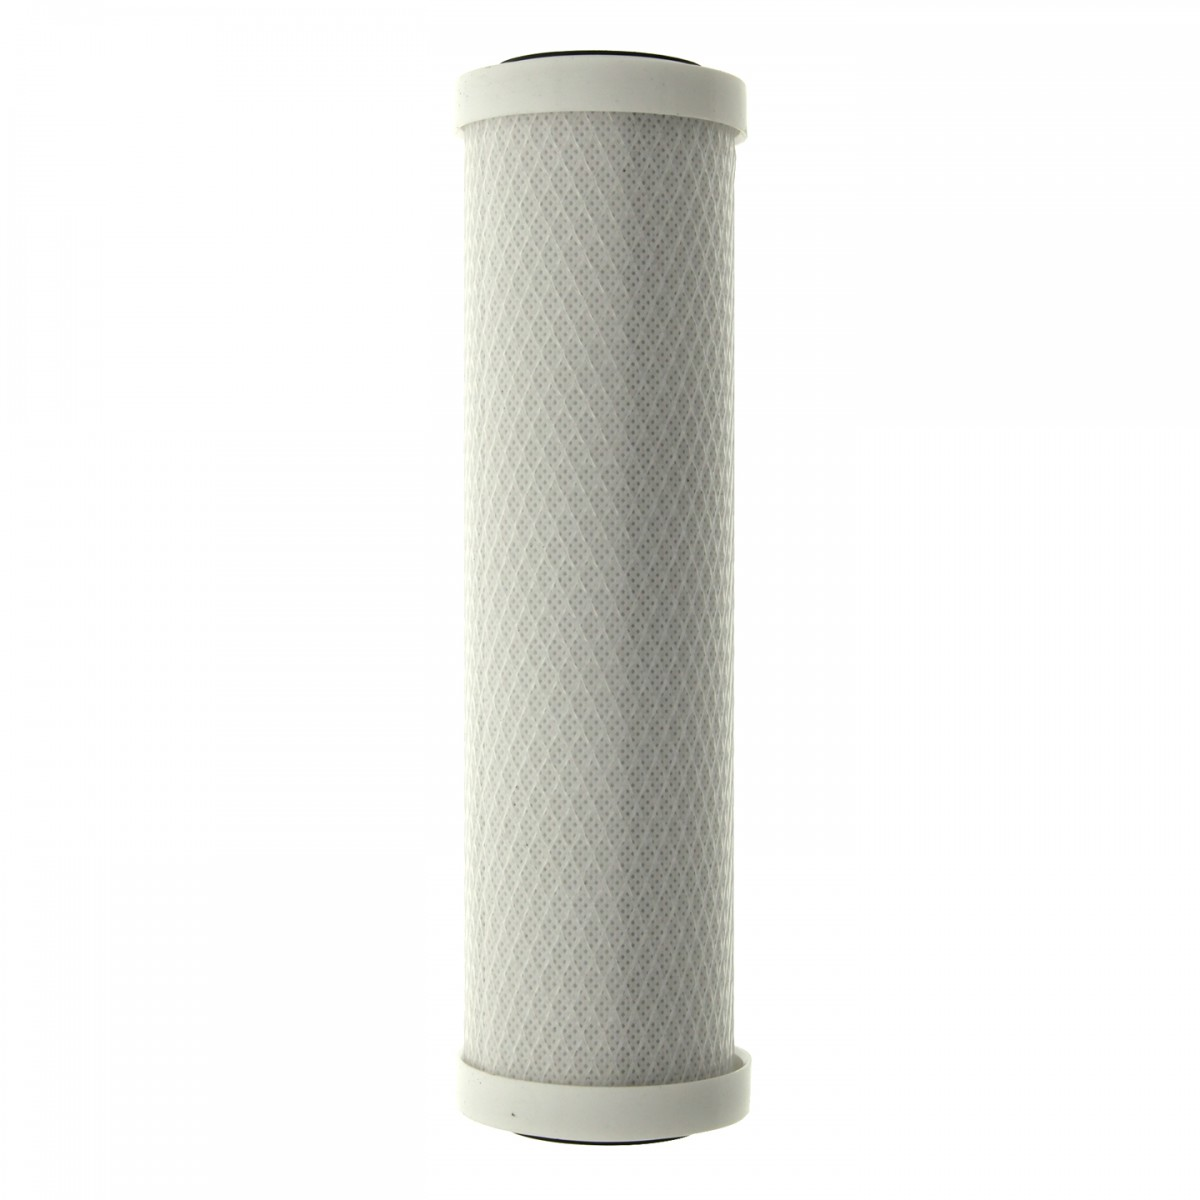 Watts Water Filter Replacement Watts Maxetw 975 C Max Replacement Filter Cartridge